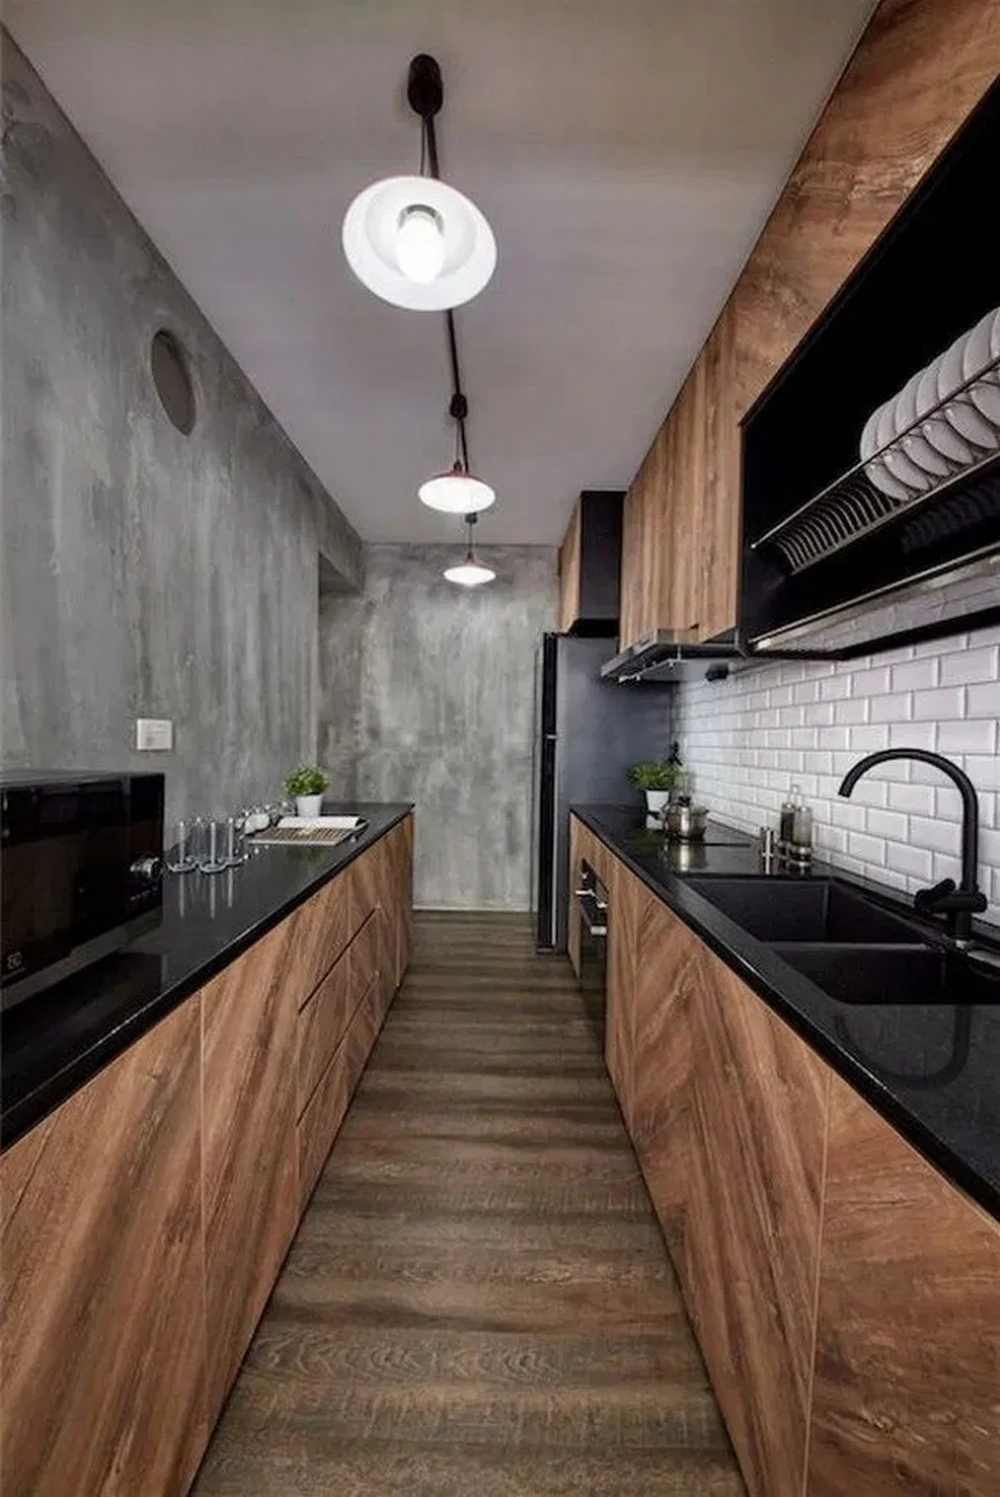 50 Amazing Black Kitchen Design Ideas 2020 16 Irma Blackkitchen Kitchen Kitchendesign Industrial Kitchen Design Modern Kitchen Design Kitchen Room Design